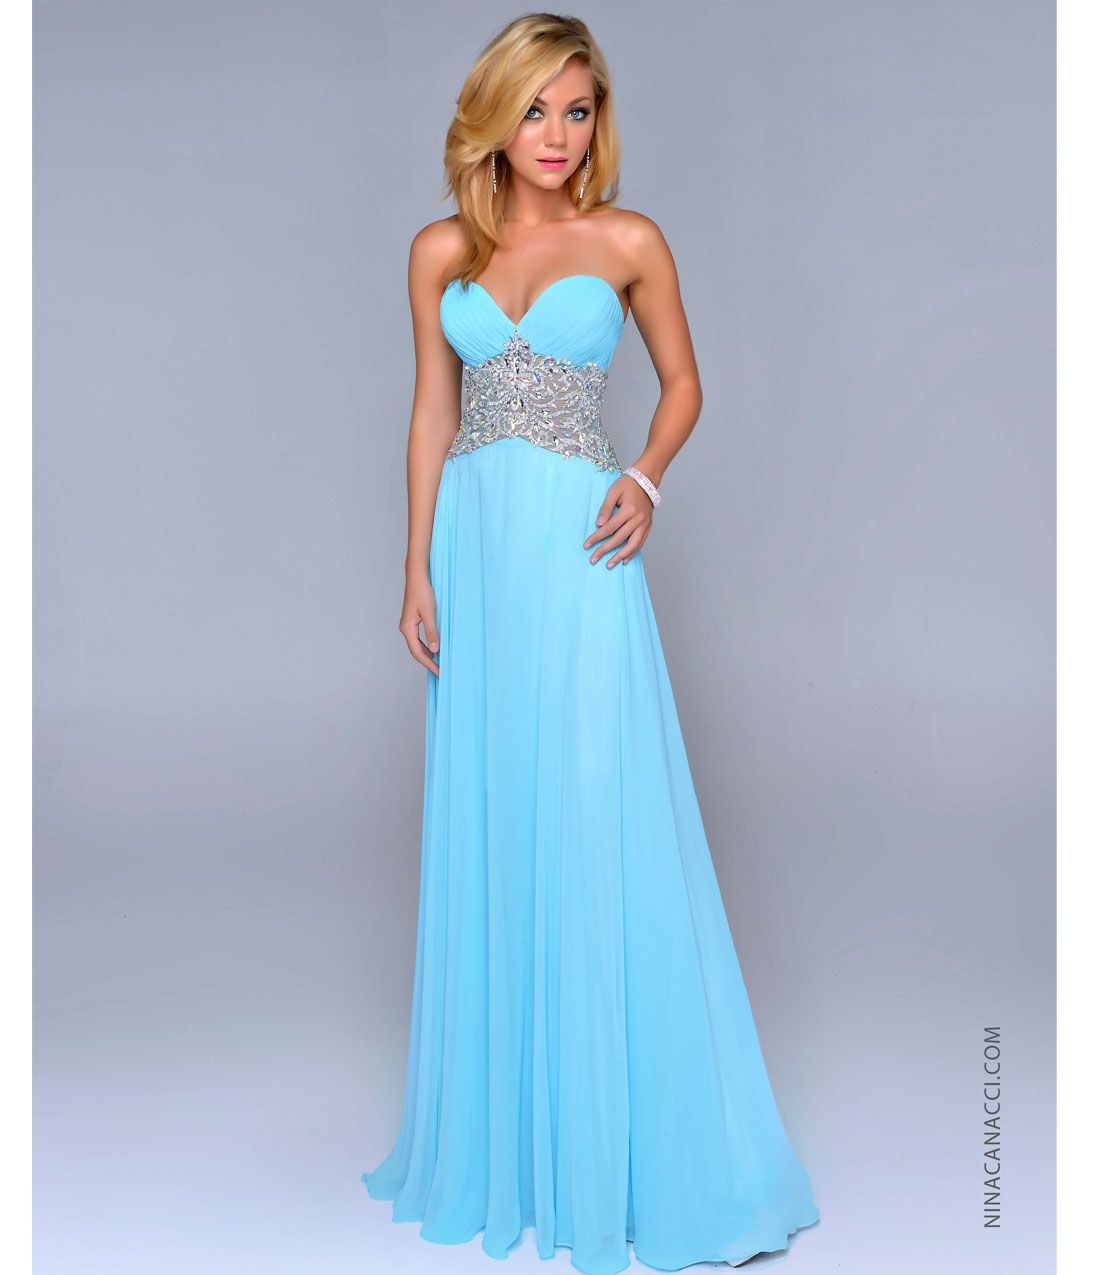 Pin by Kelsey denney on I would wear this | Pinterest | Prom ...